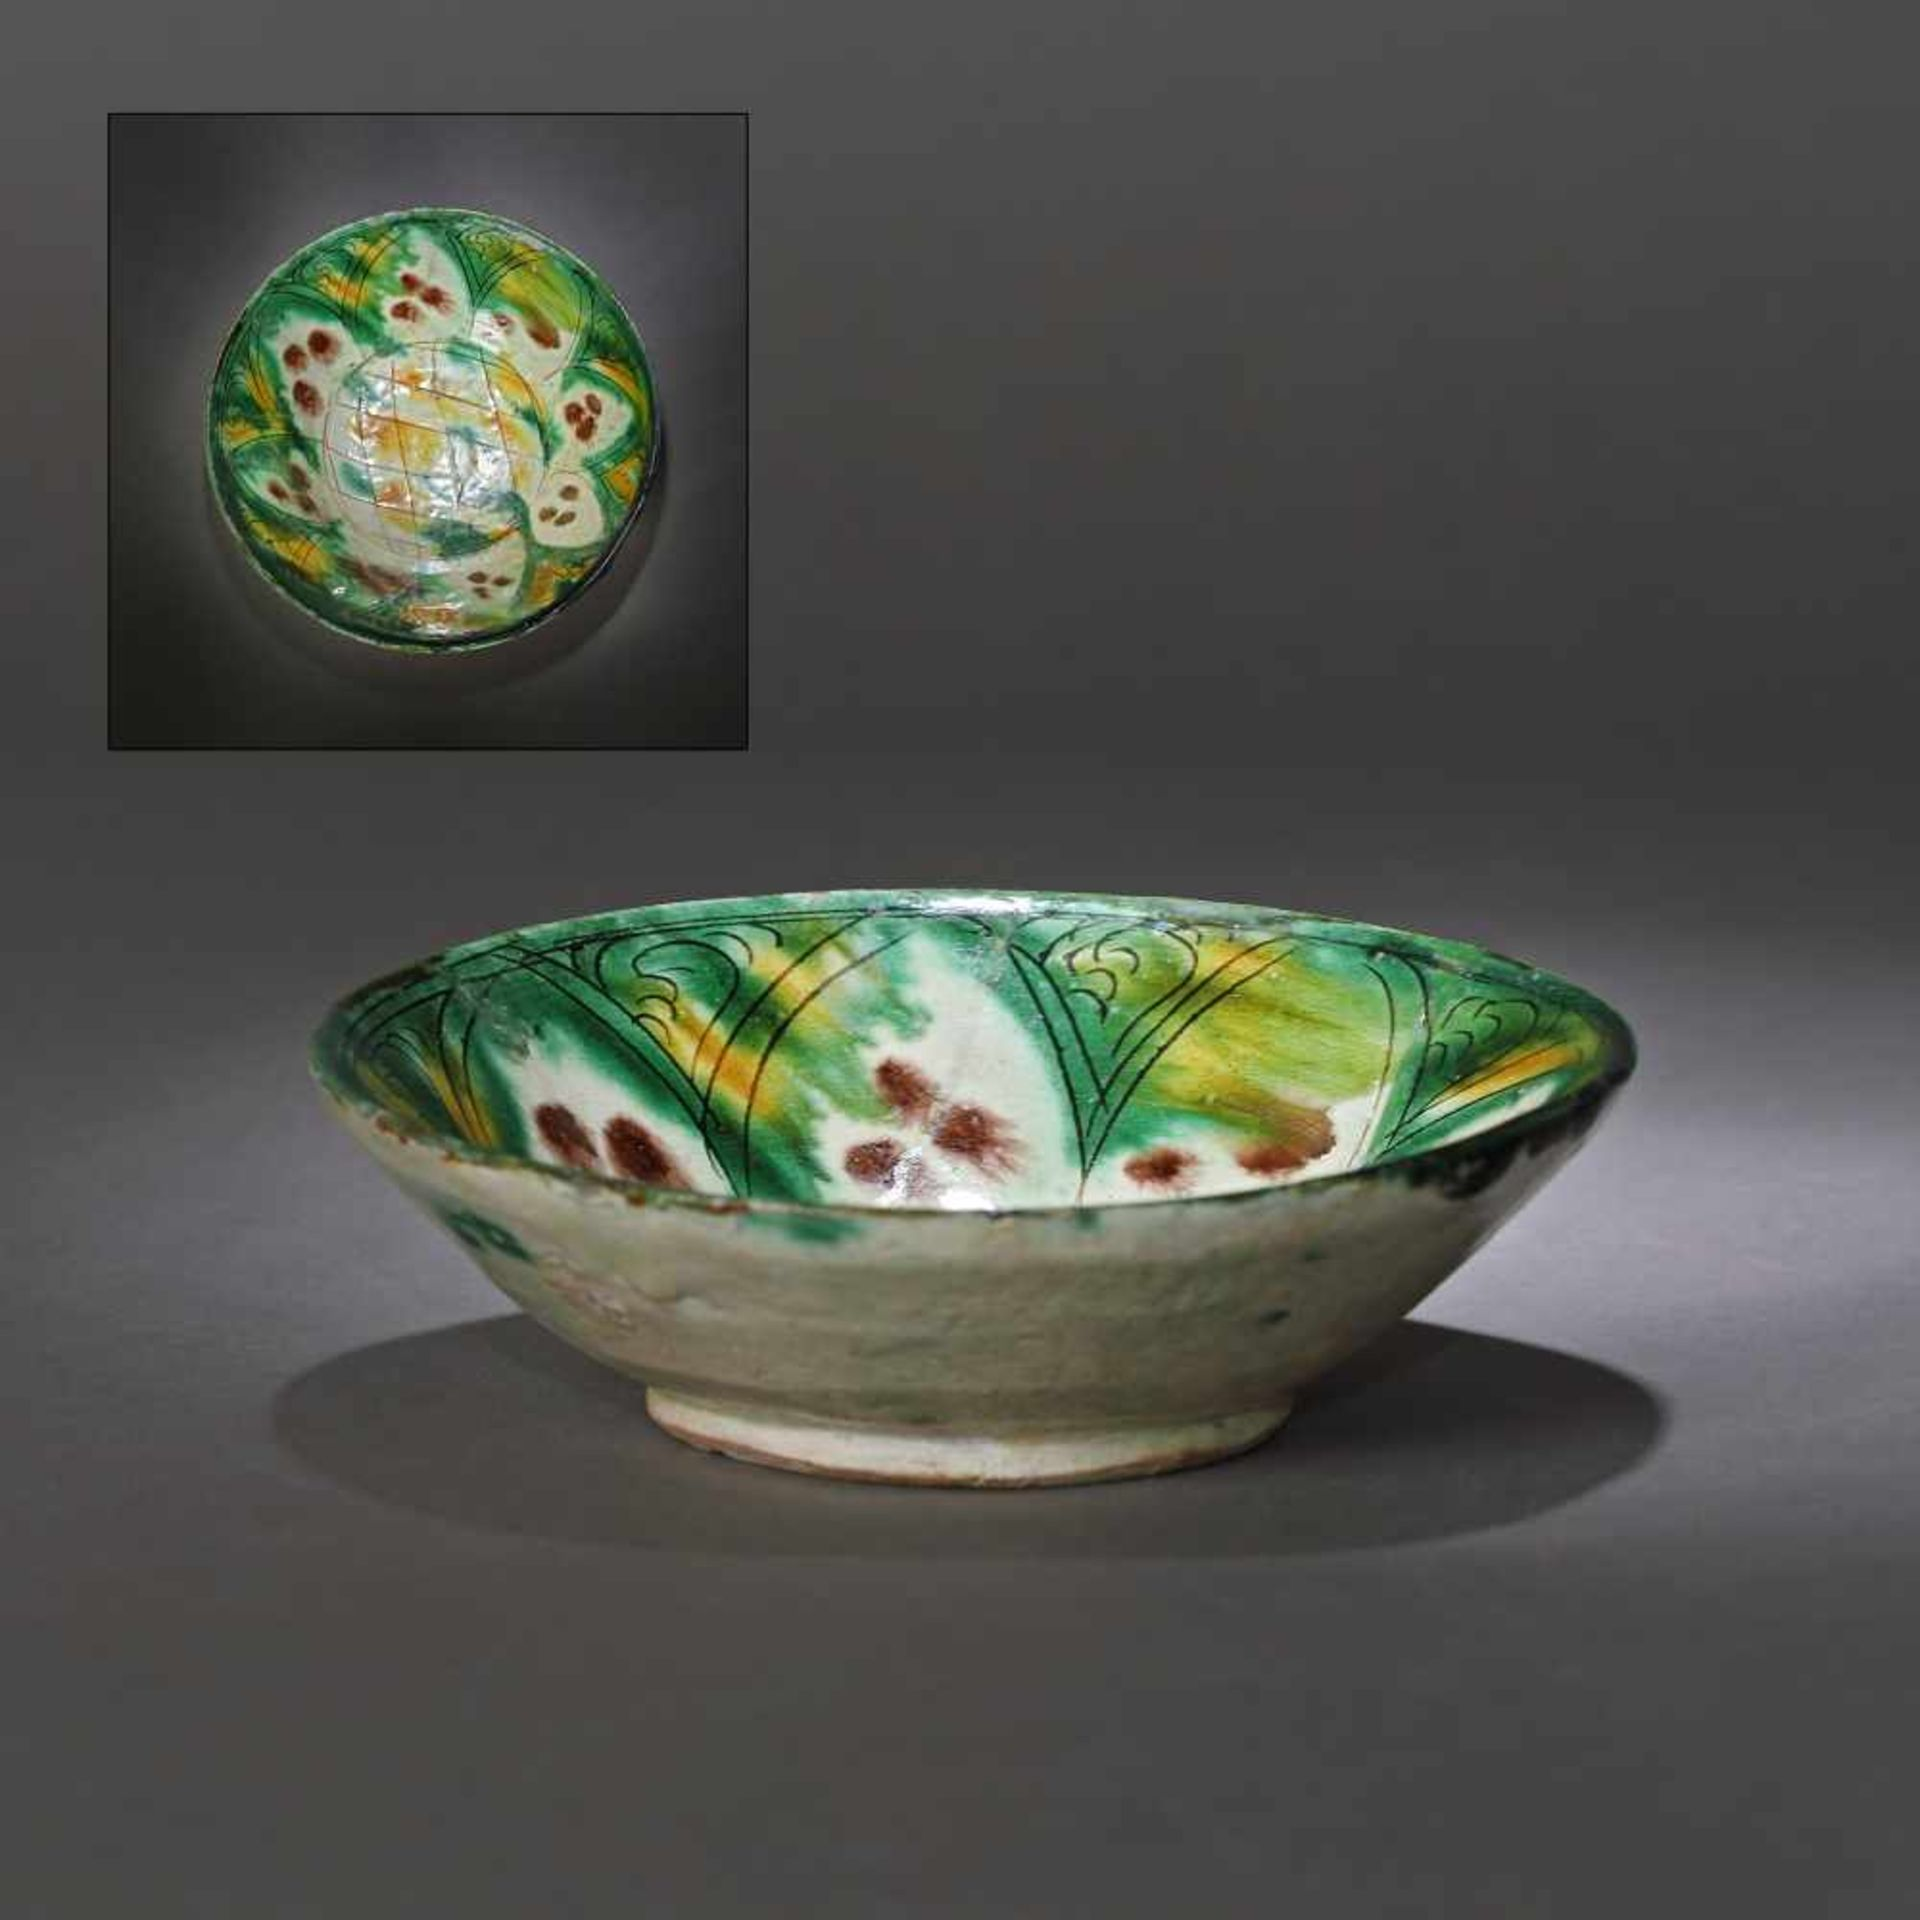 Persian ceramic vessel with three-color glaze, approx. 800 years old, 12th century (accompanied by a